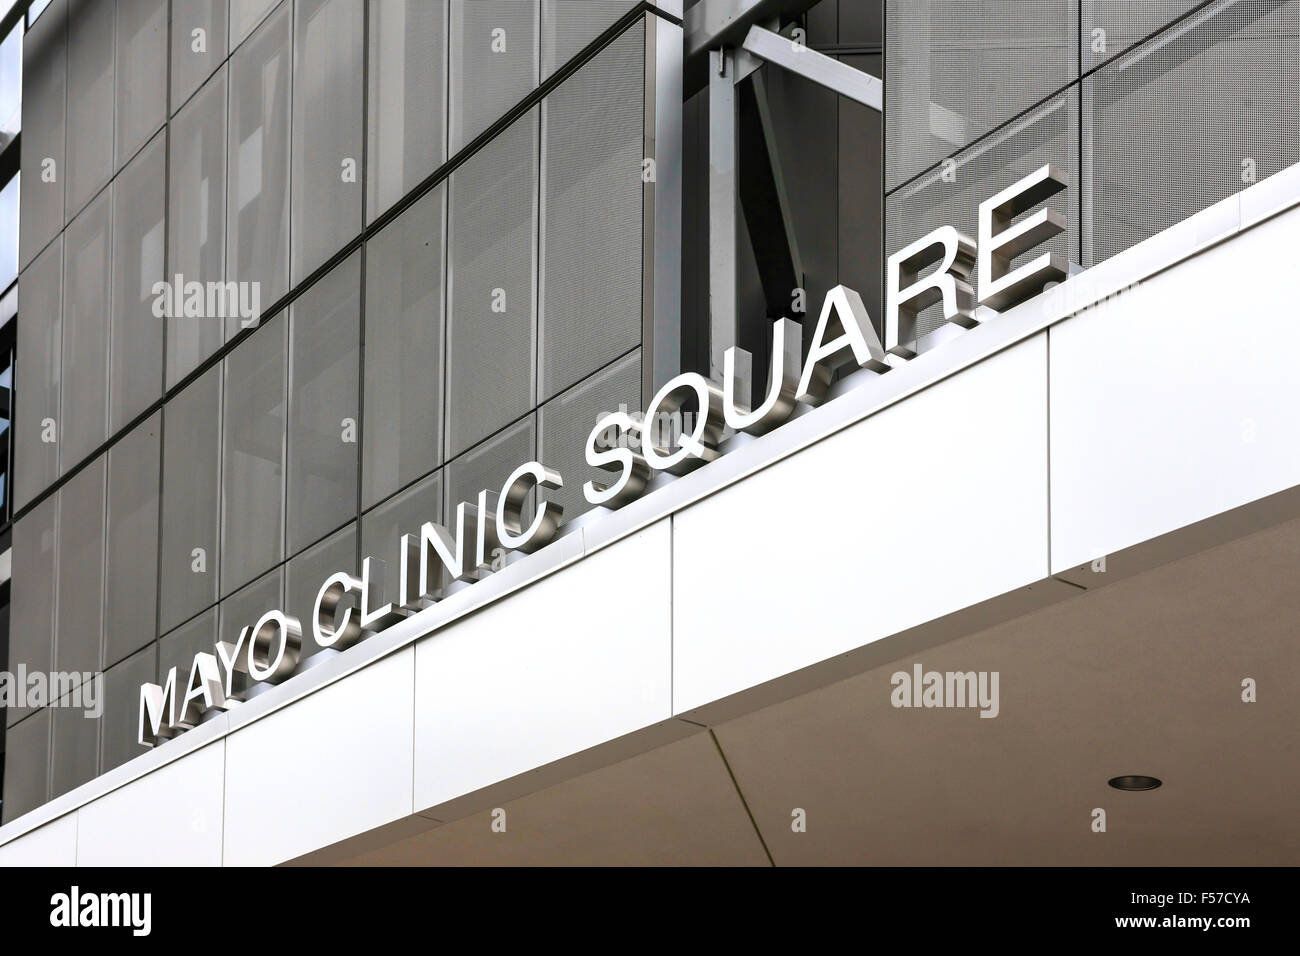 Mayo Clinic Stock Photos & Mayo Clinic Stock Images - Alamy